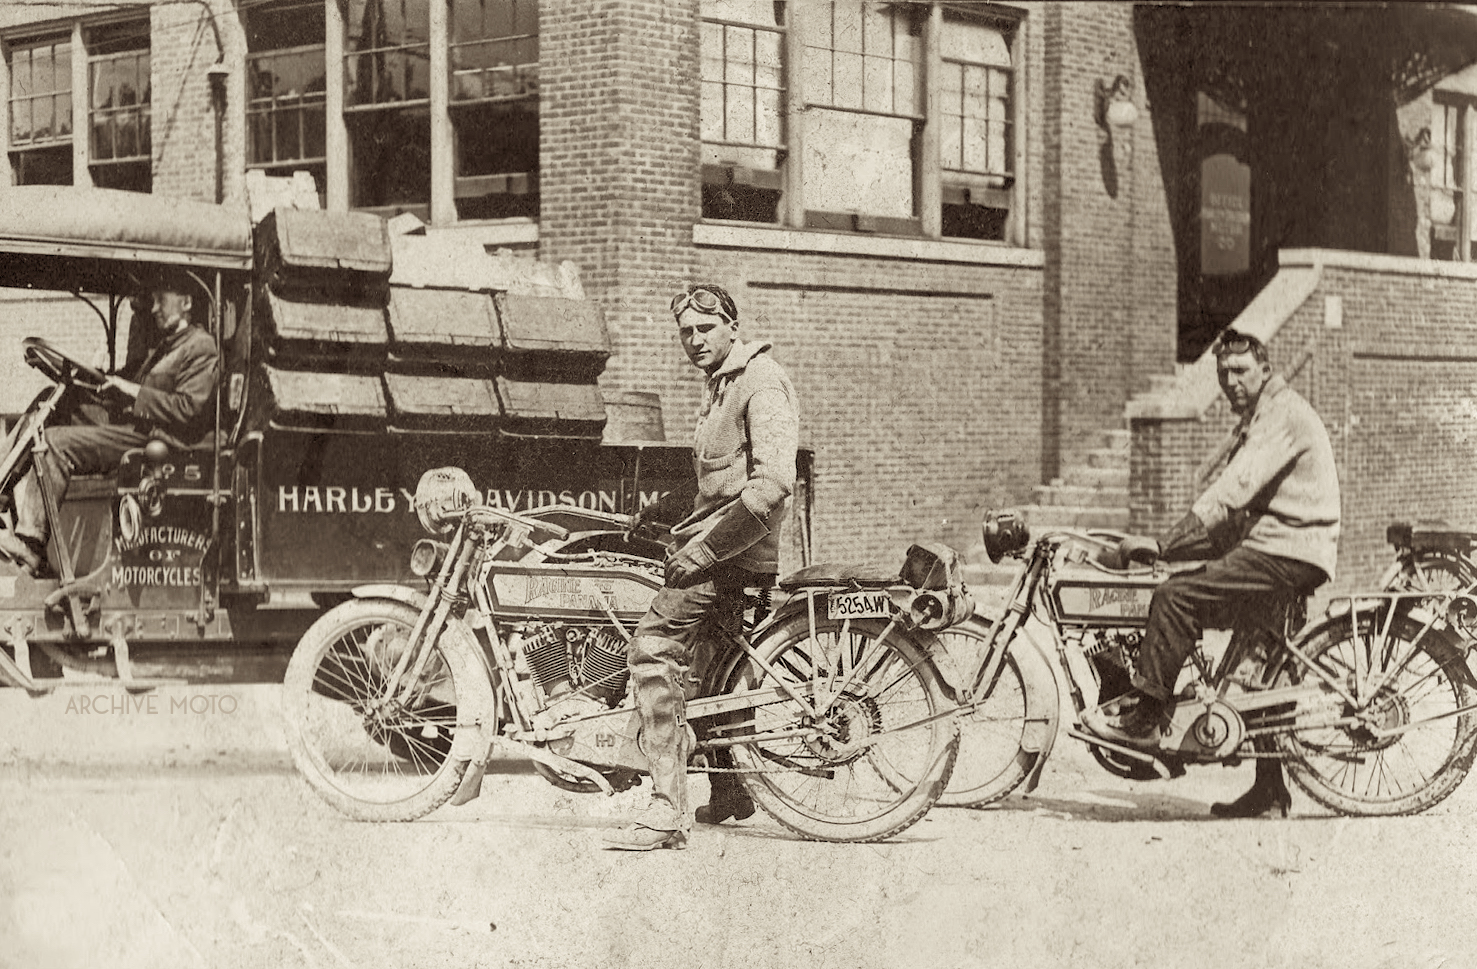 Jack Bernvitzke and Dan Klapproth onboard their Harley-Davidson 10F's in front of the Milwaukee factory just before their transcontinental adventure in the late summer of 1914.